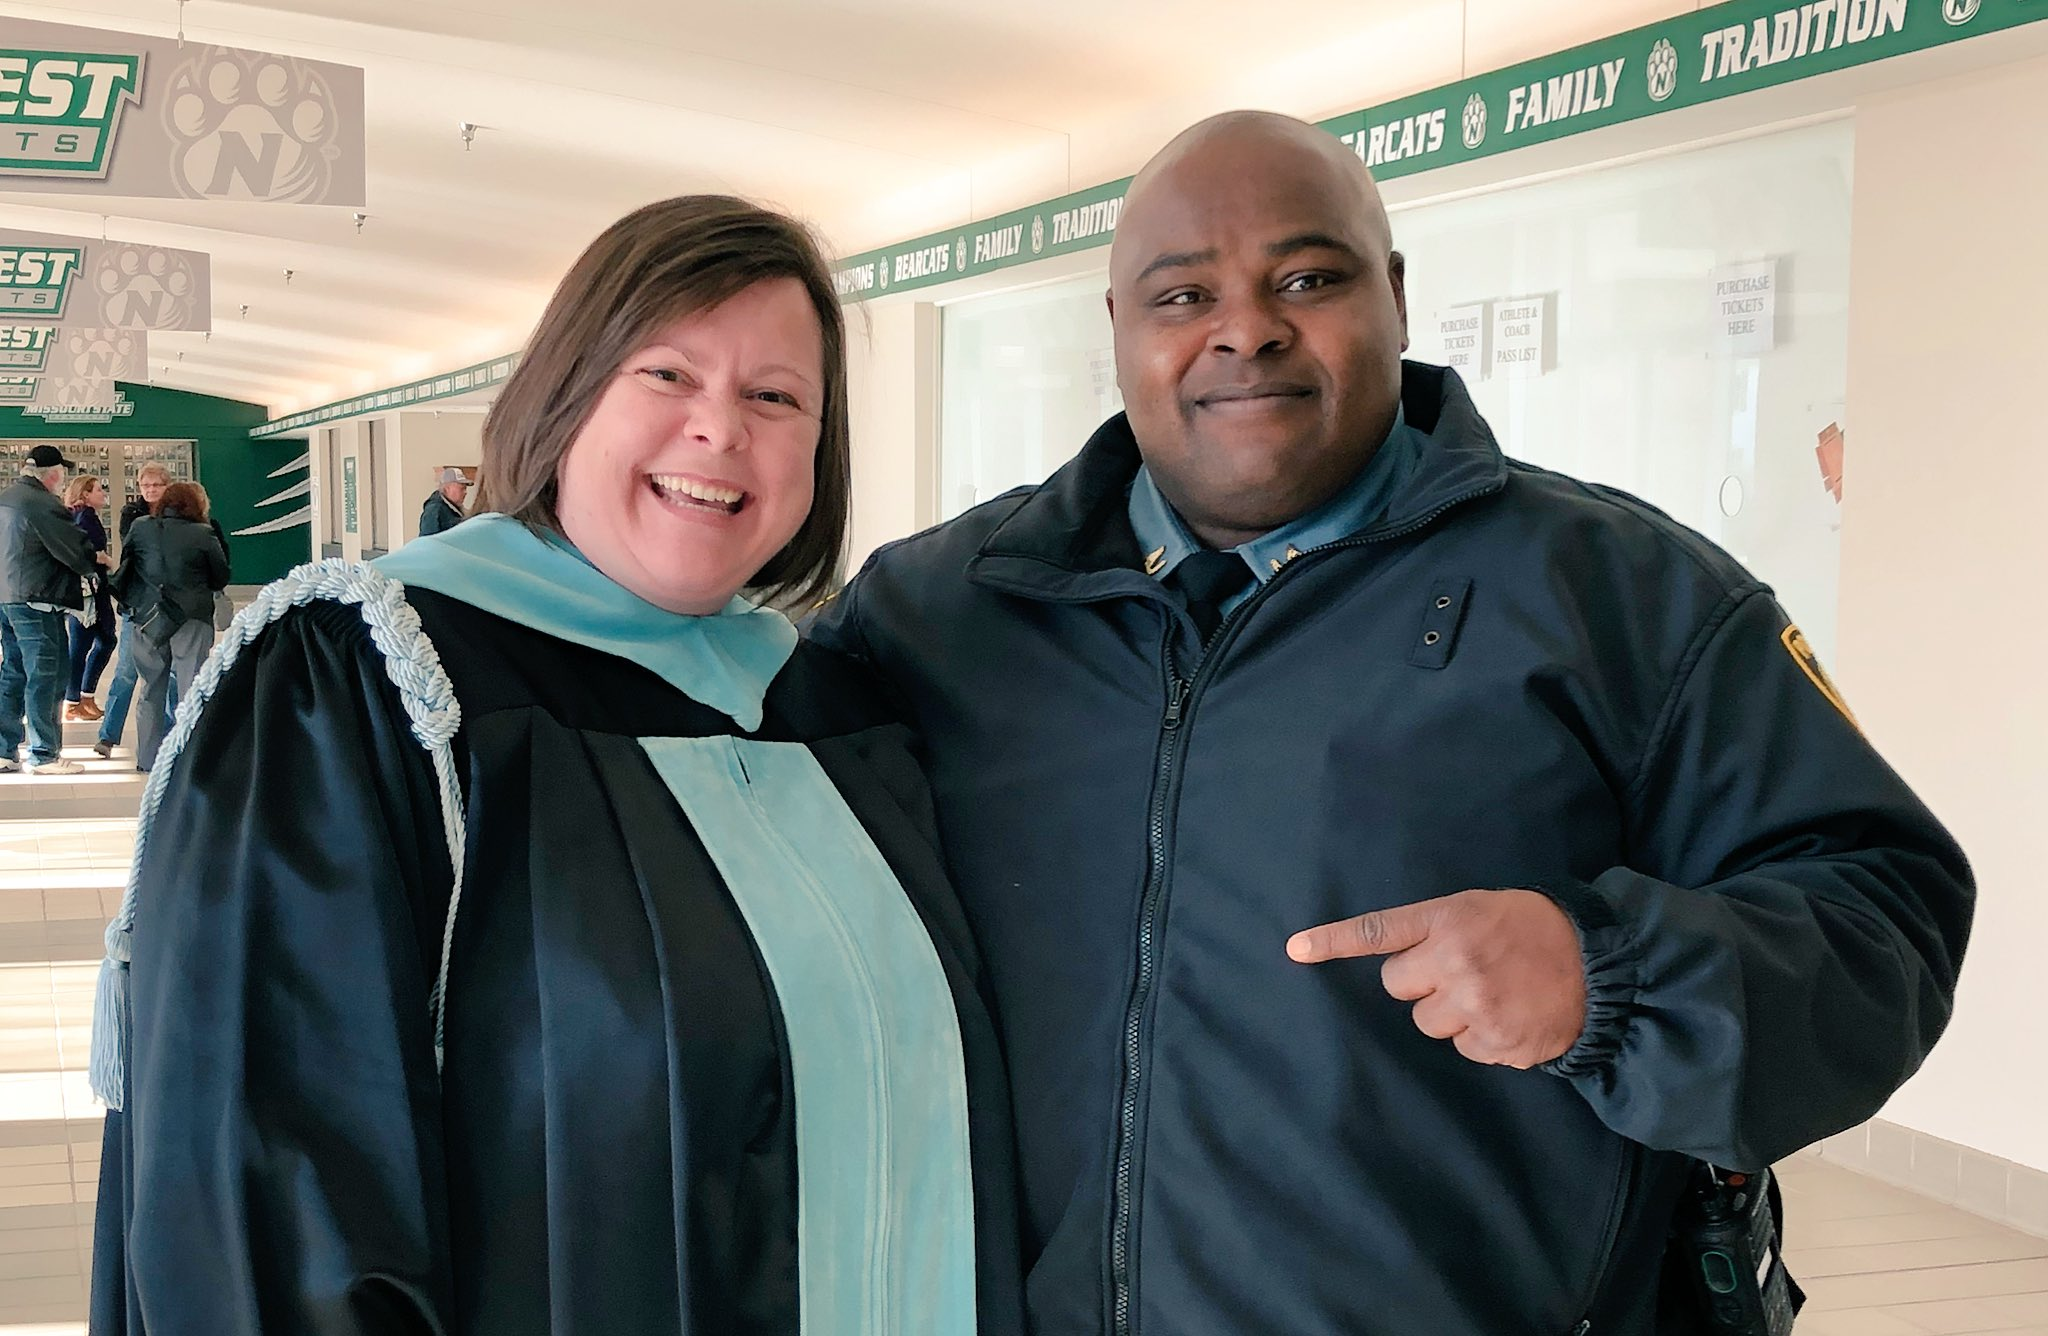 @NW_UPD is always there! Nice to share a few memories before commencement today! #OABAAB https://t.co/3g6oREgPO9